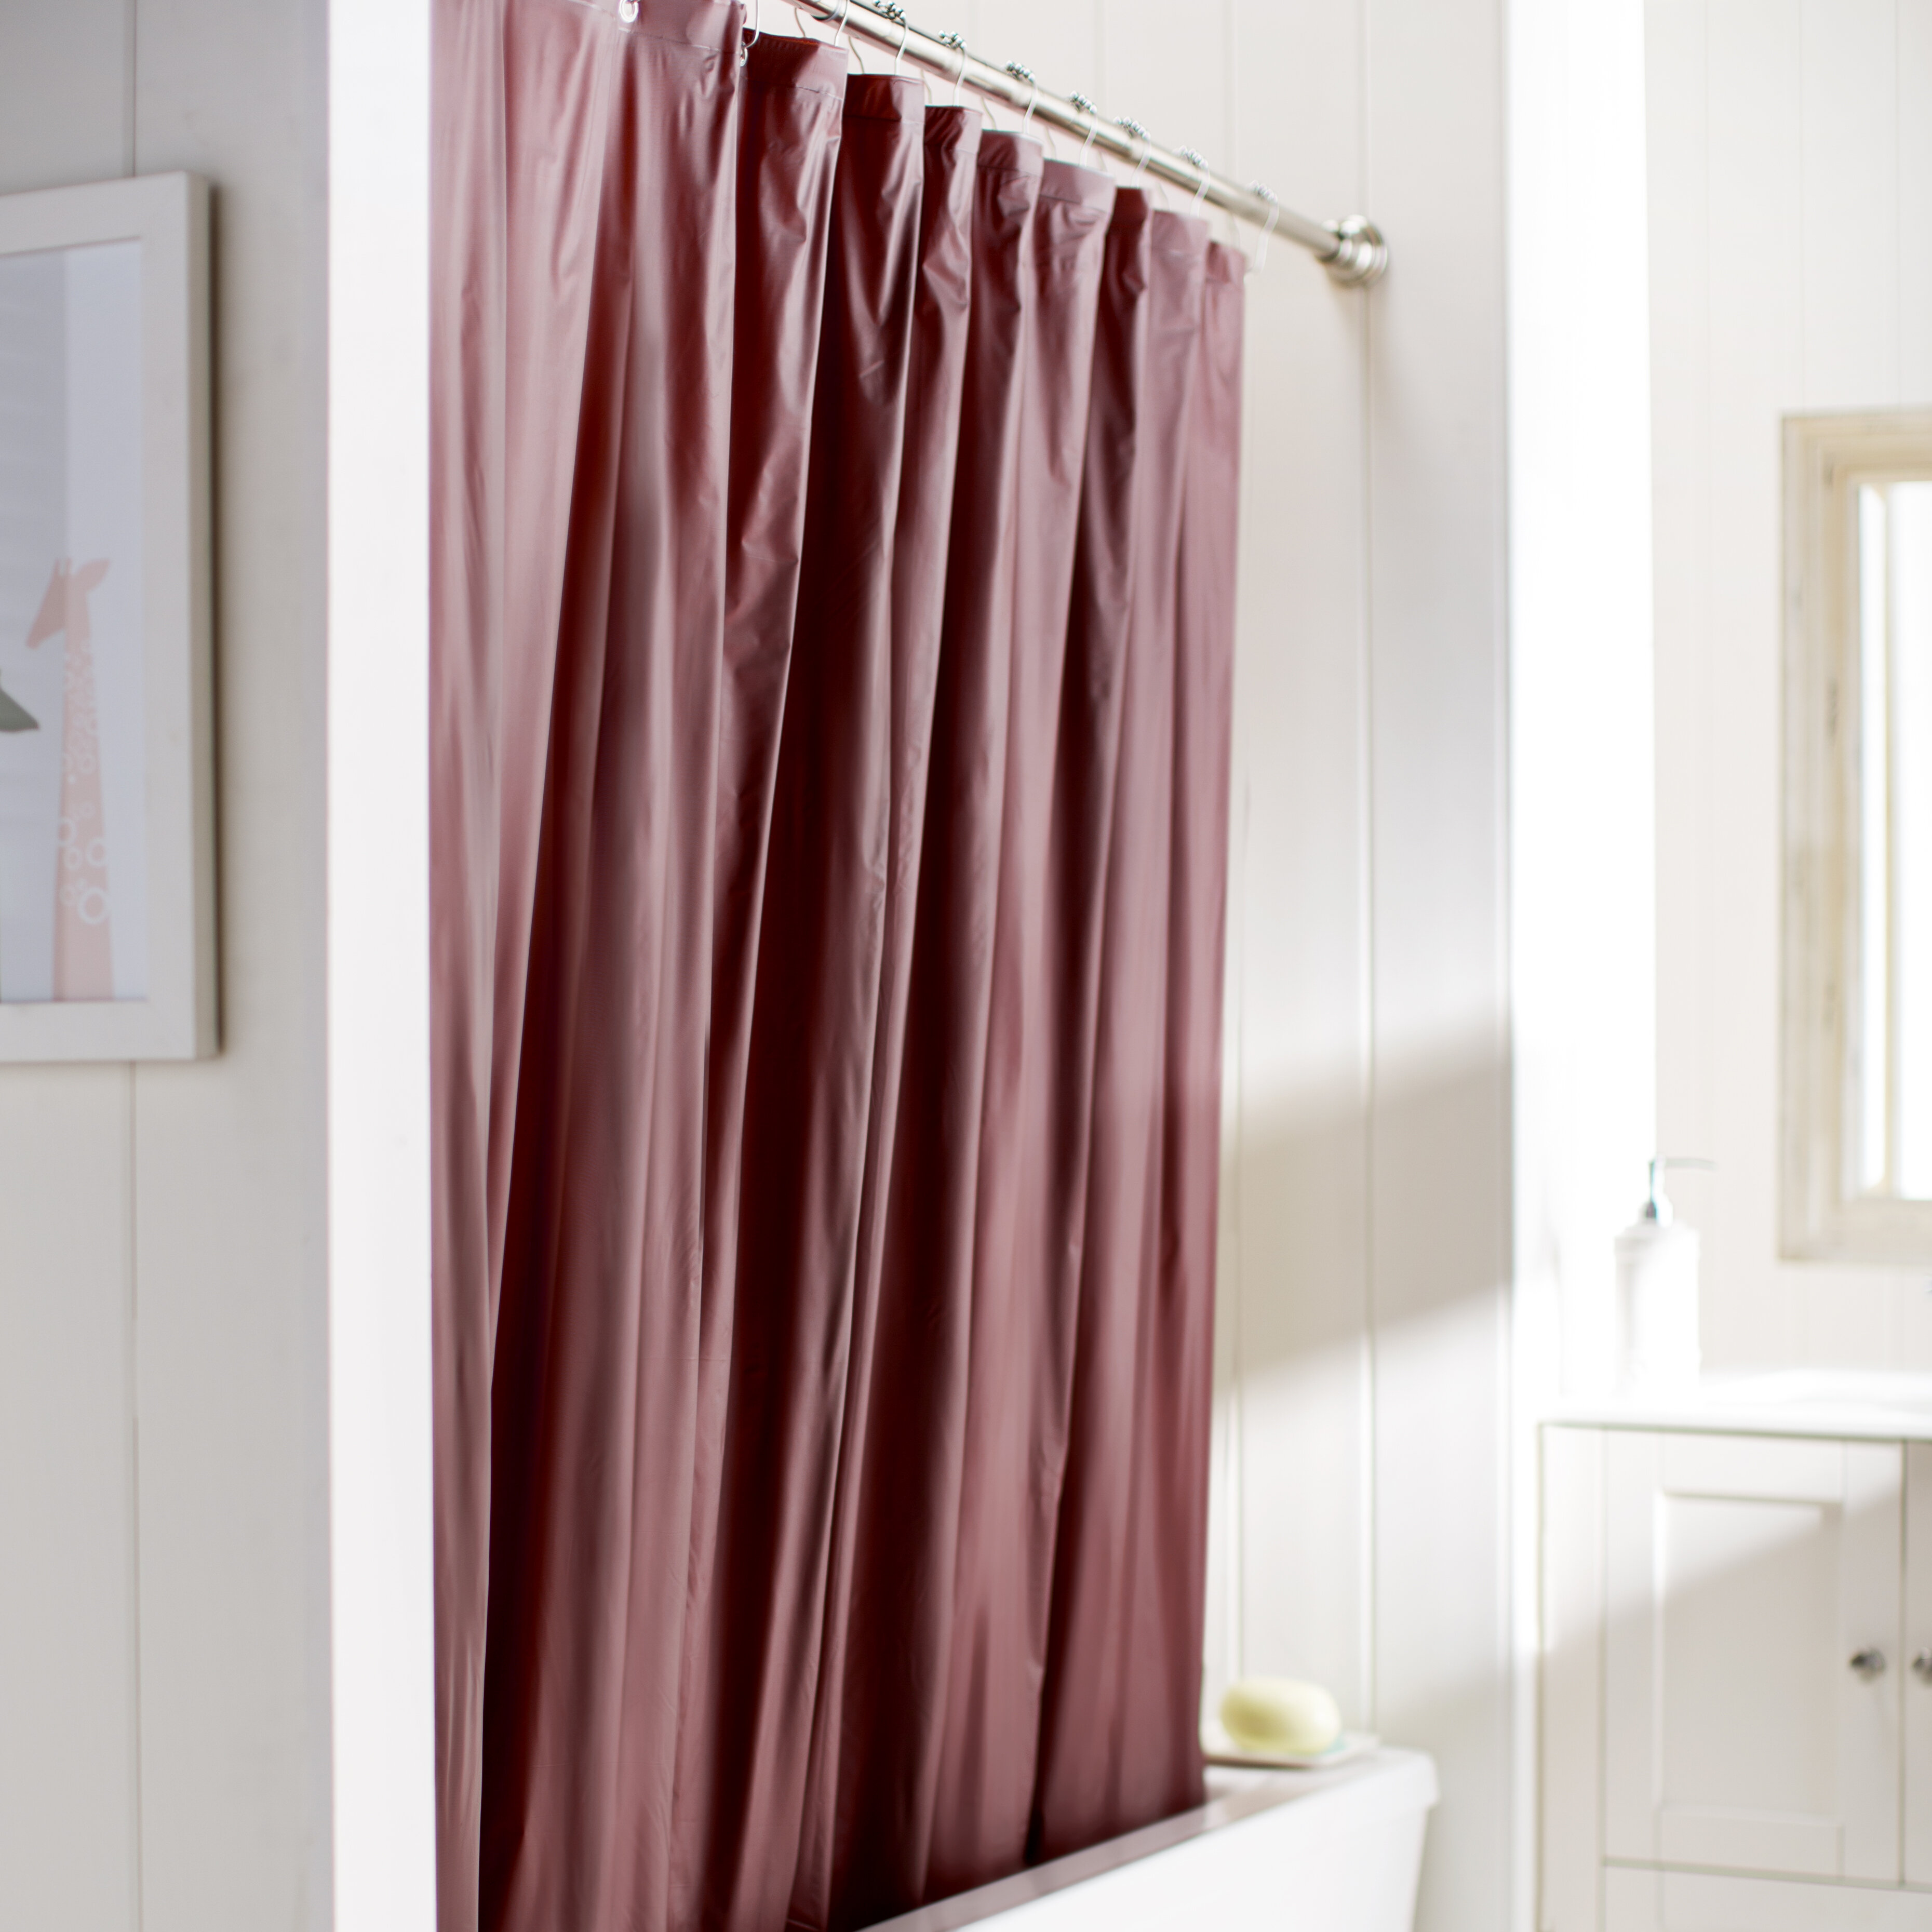 Amann Vinyl Single Shower Curtain Liner